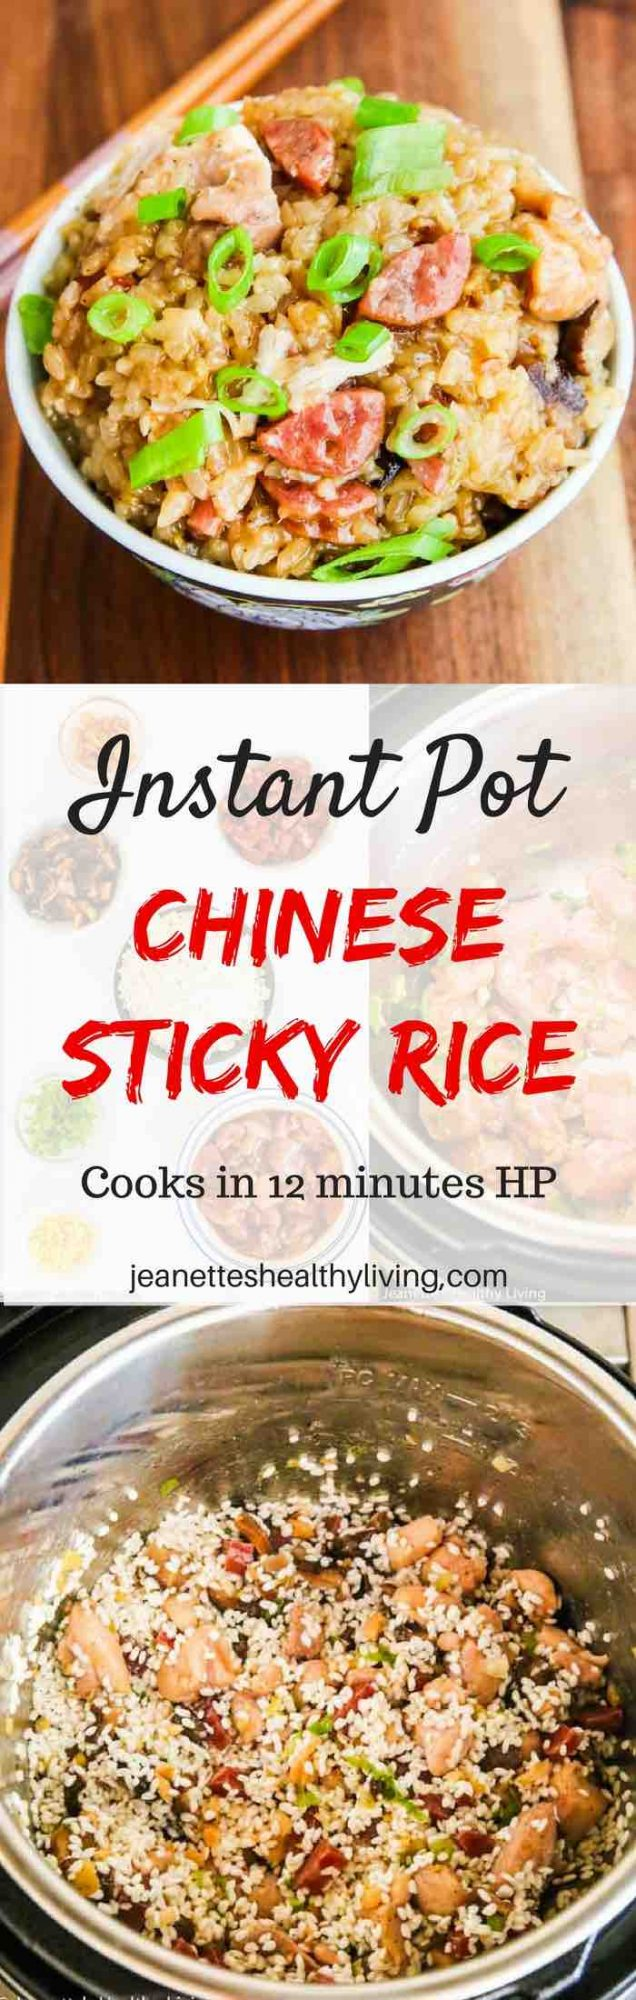 Instant Pot Chinese Sticky Rice - traditional Chinese dish featuring Chinese sausage, chicken and shitake mushrooms; 12 minutes cooking time using pressure cooker setting